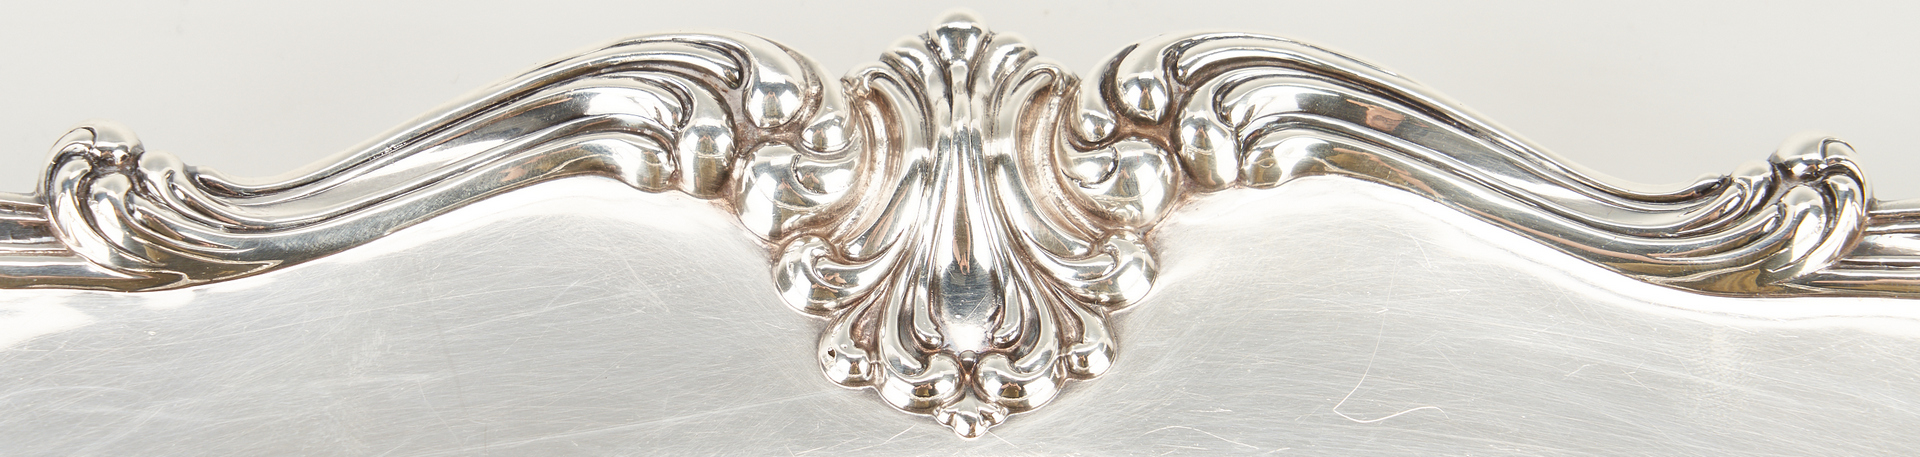 Lot 1226: Whiting Oval Sterling Silver Tray w/ Rococo Border